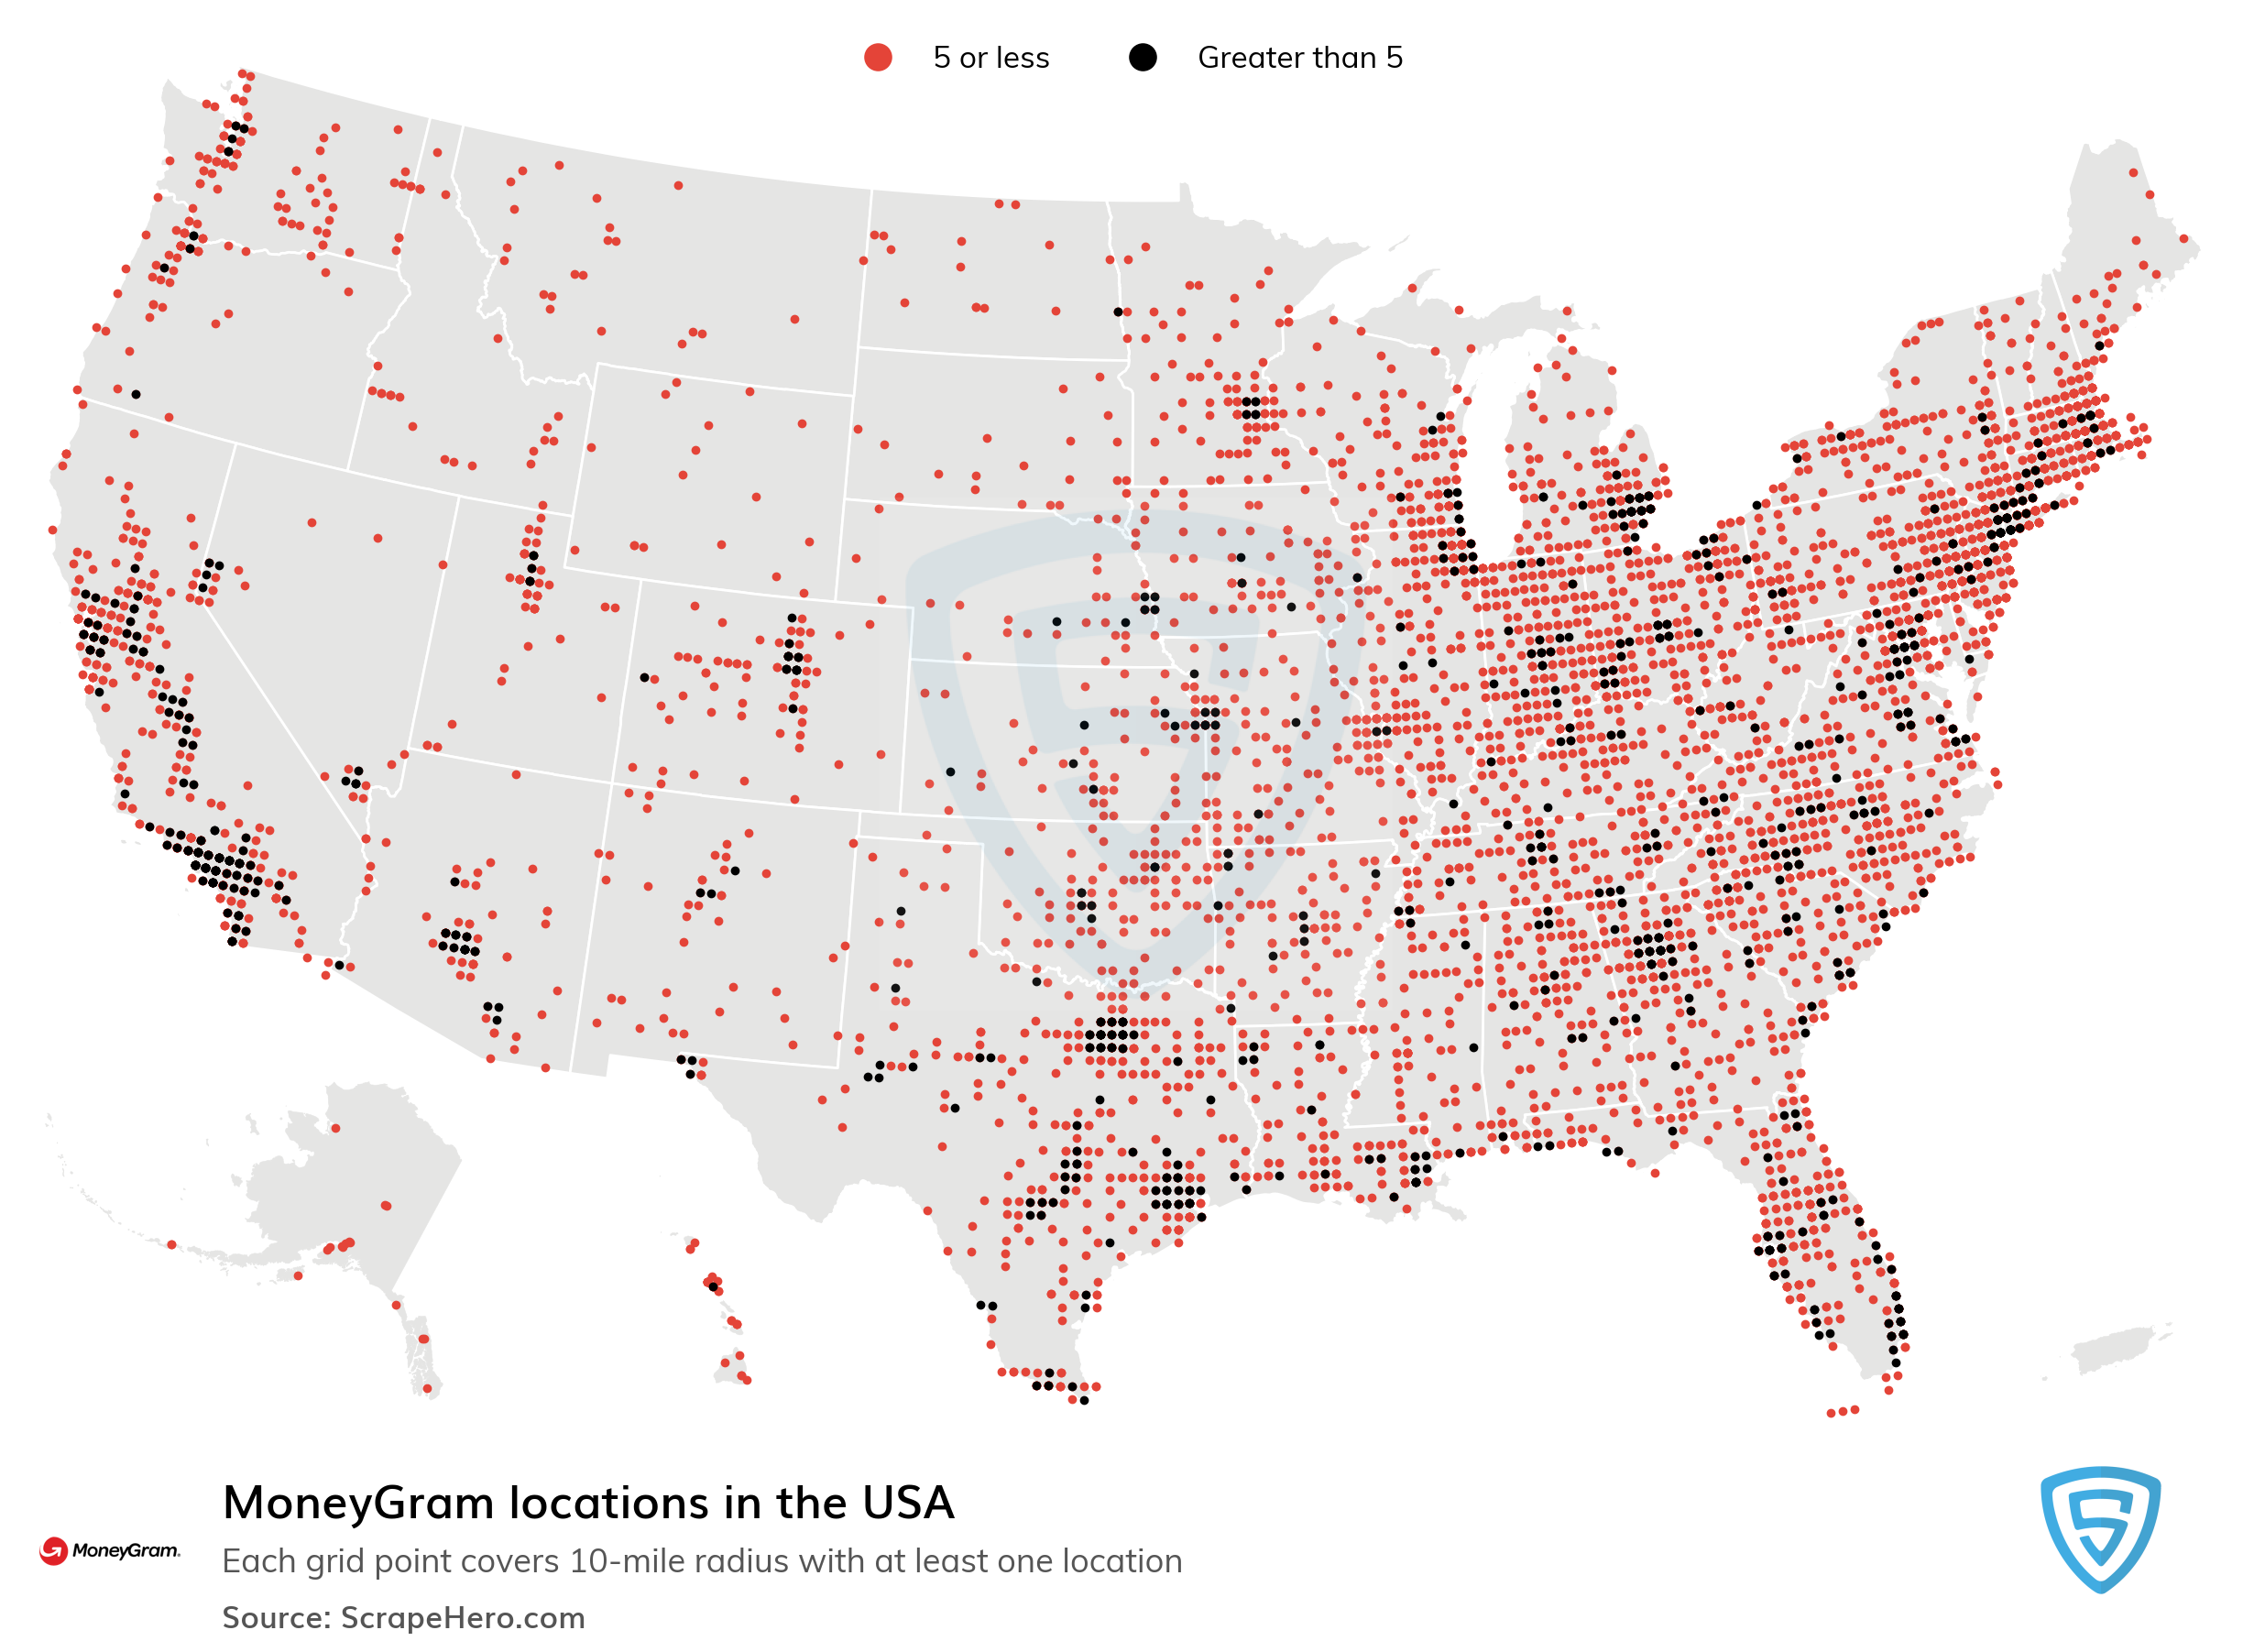 Large Map of MoneyGram locations in the USA